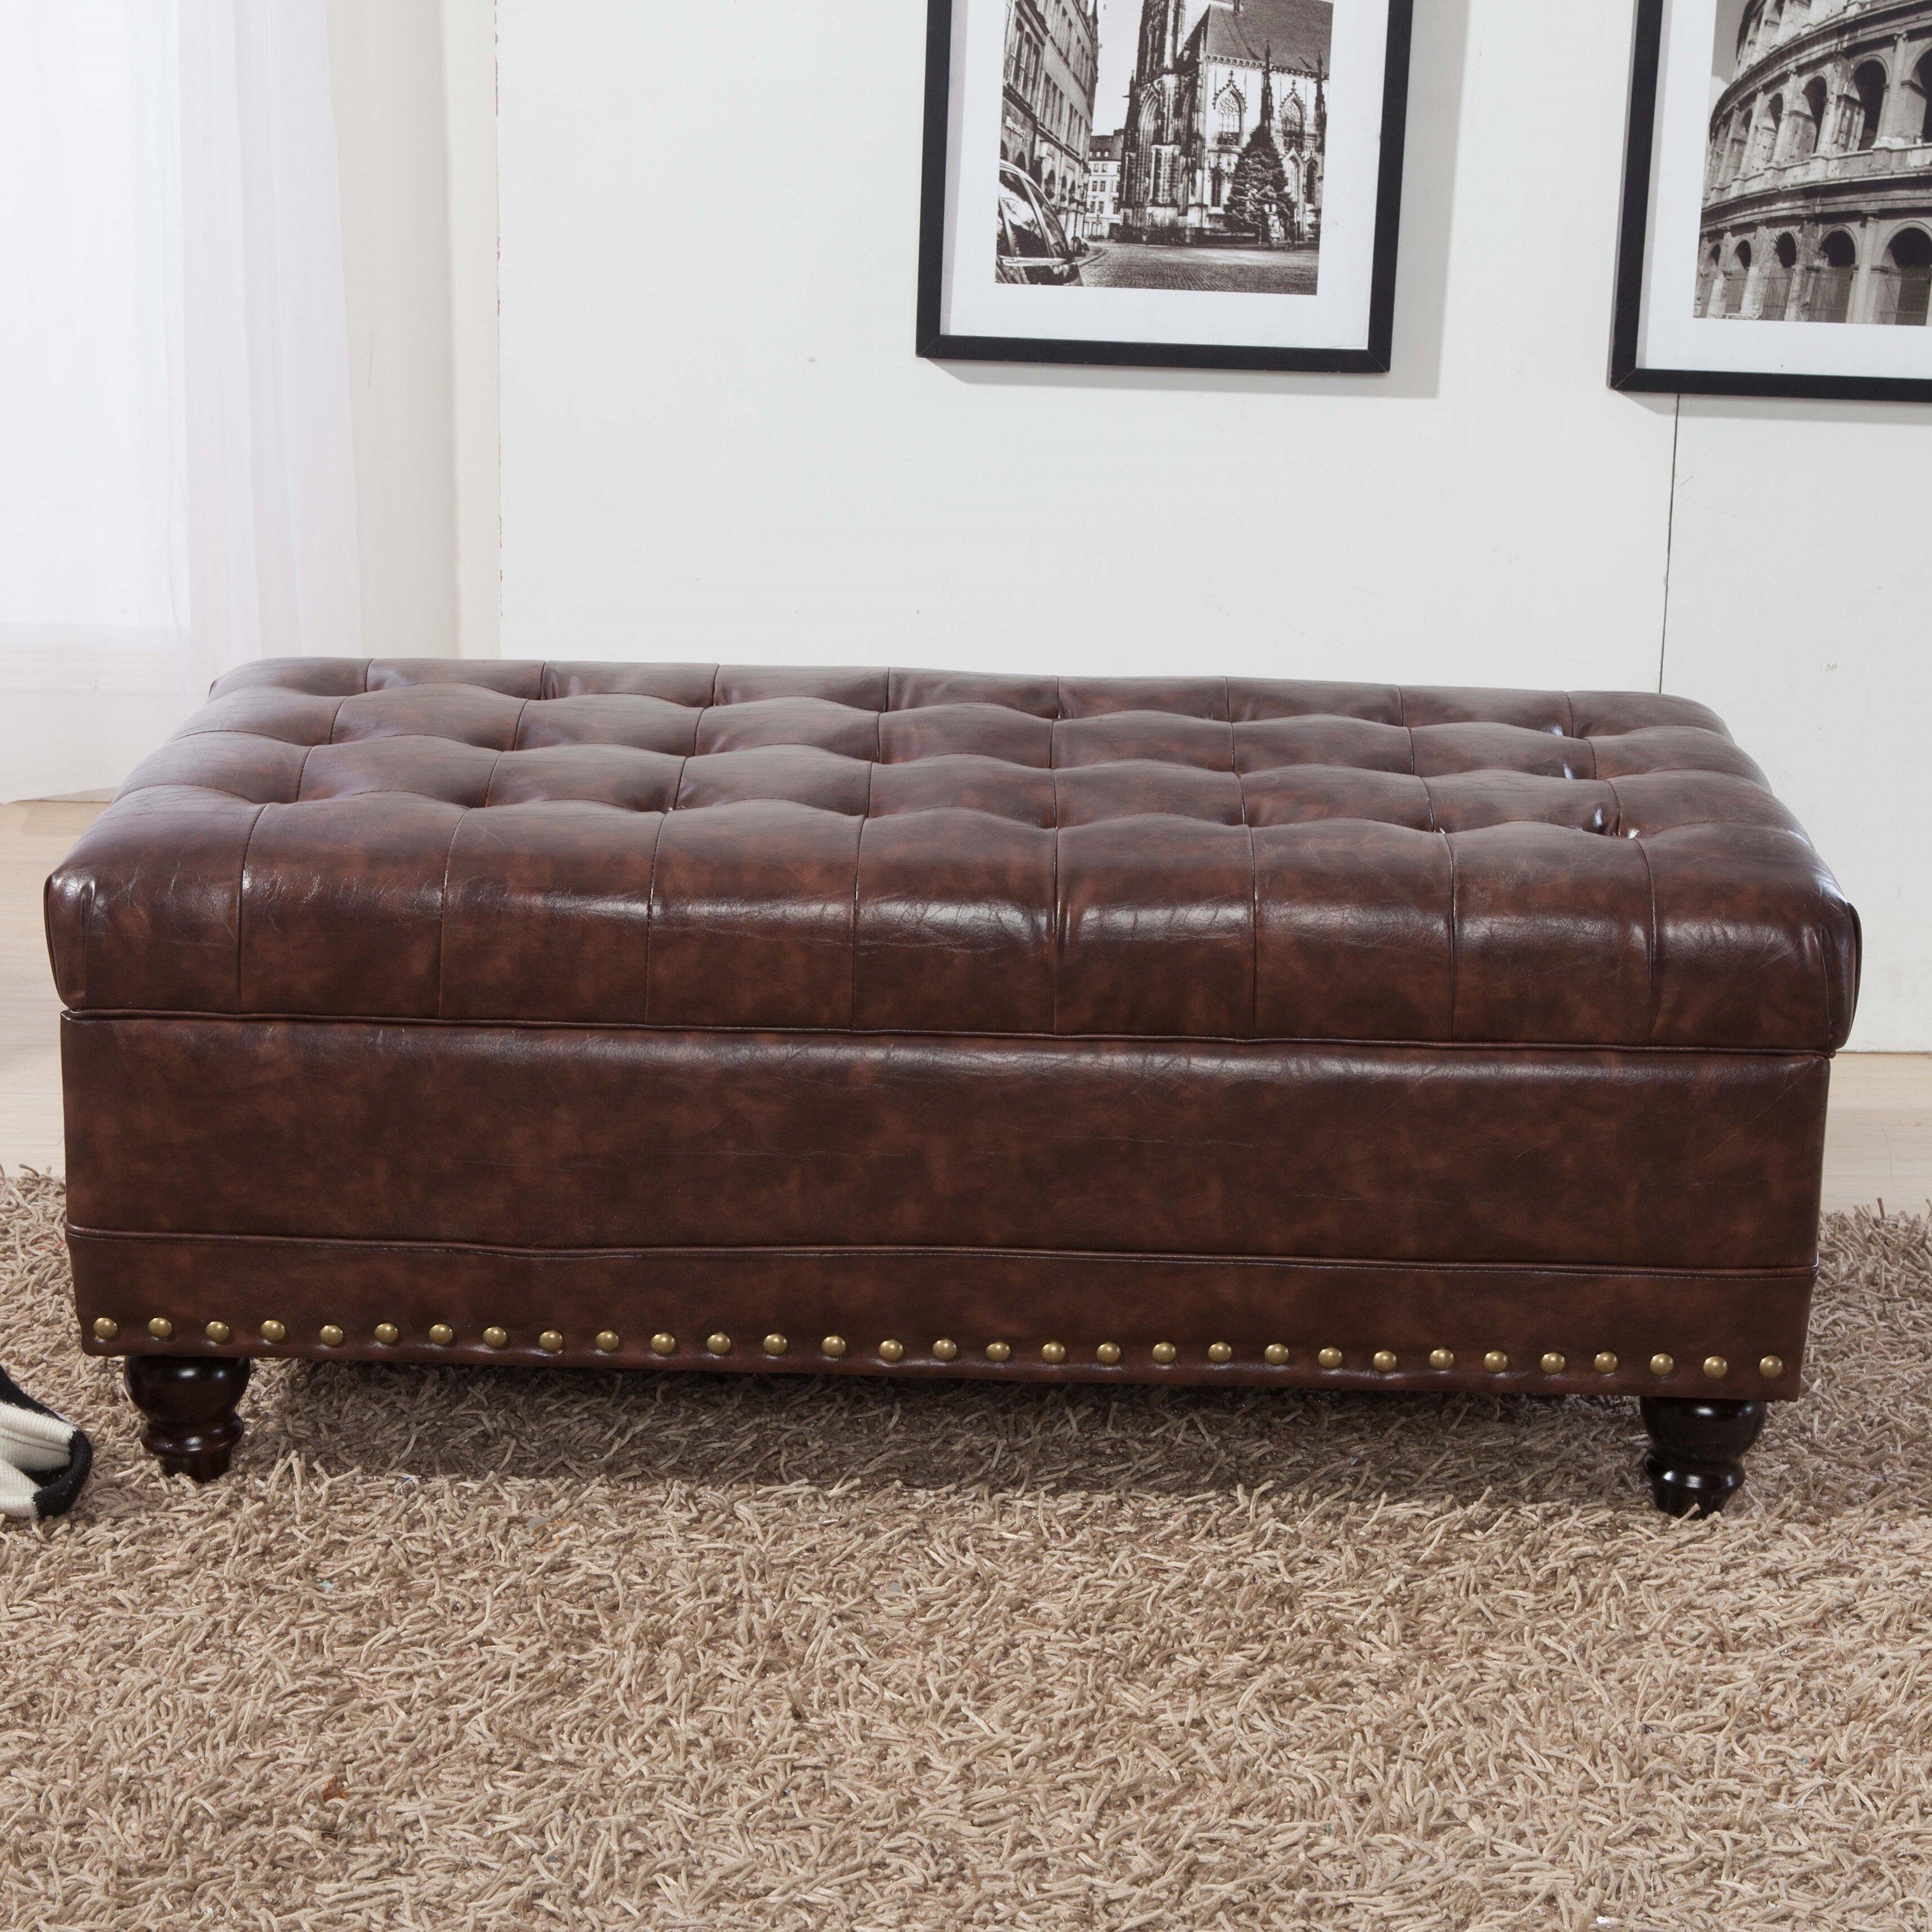 Varian Upholstered Storage Bedroom Bench Reviews: NOYA USA Castilian Upholstered Storage Bedroom Bench